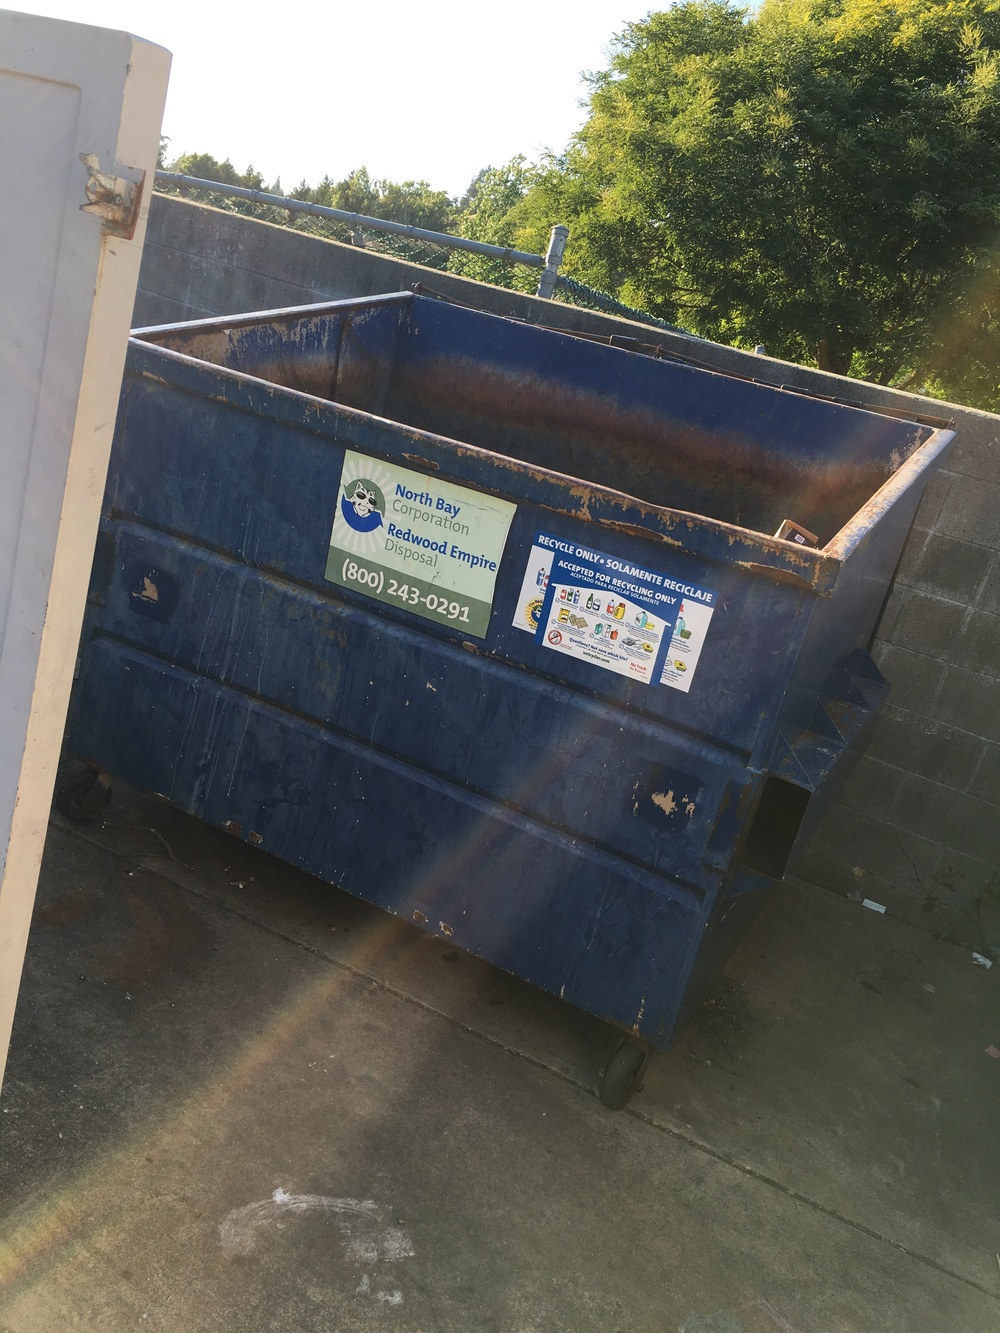 But before my trap came by mail order , I was walking by one morning and literally saw one of the smaller babies jump into the dumpster in his rush to hide from me .   Oh shoot !